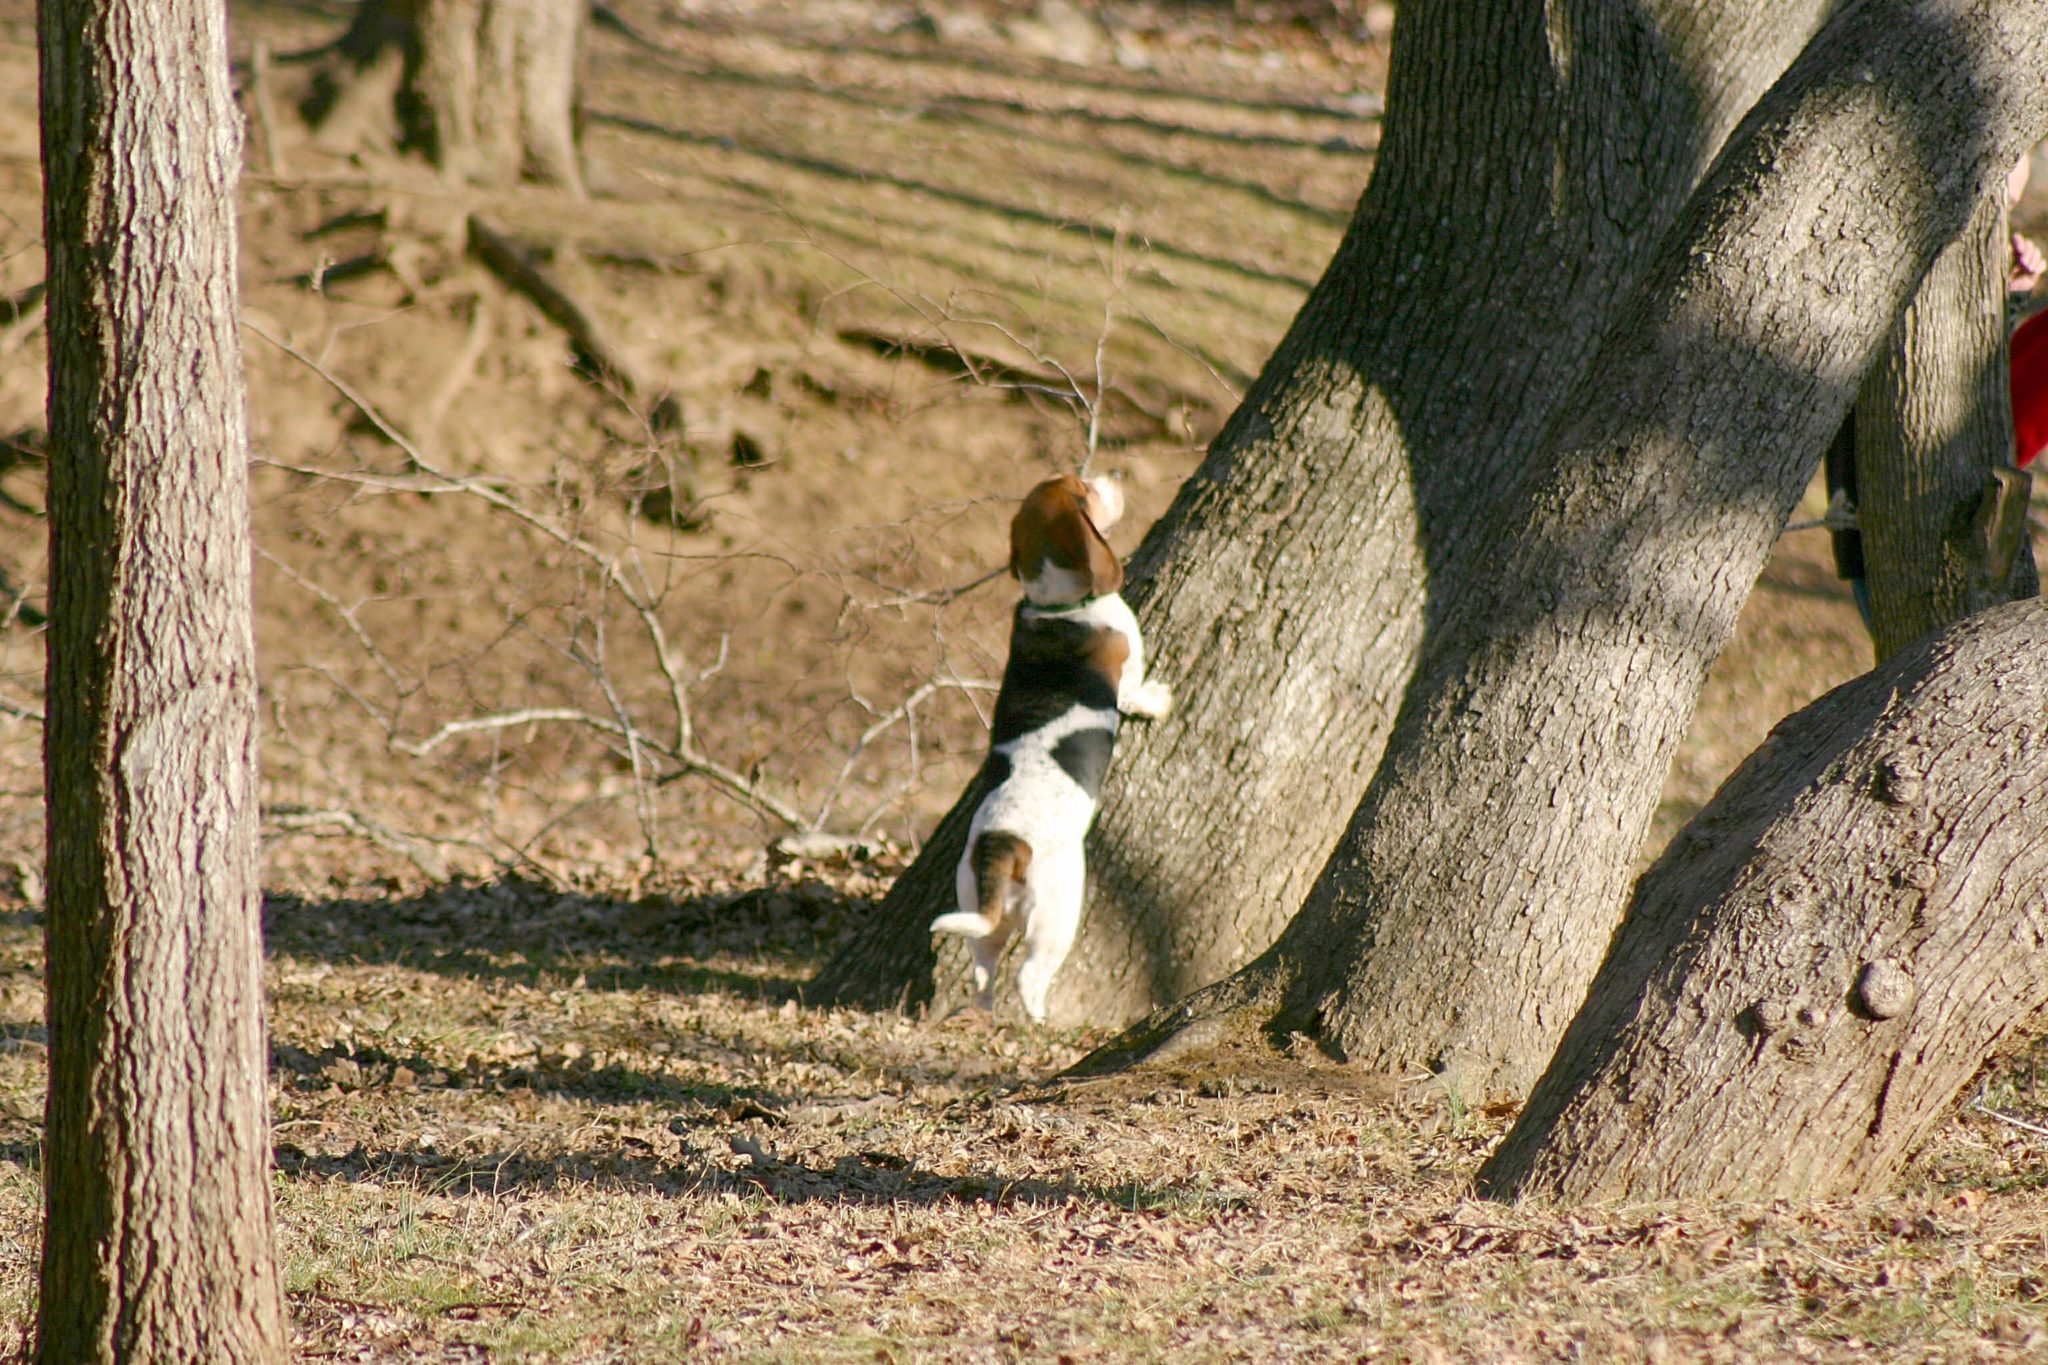 Treed Squirrel